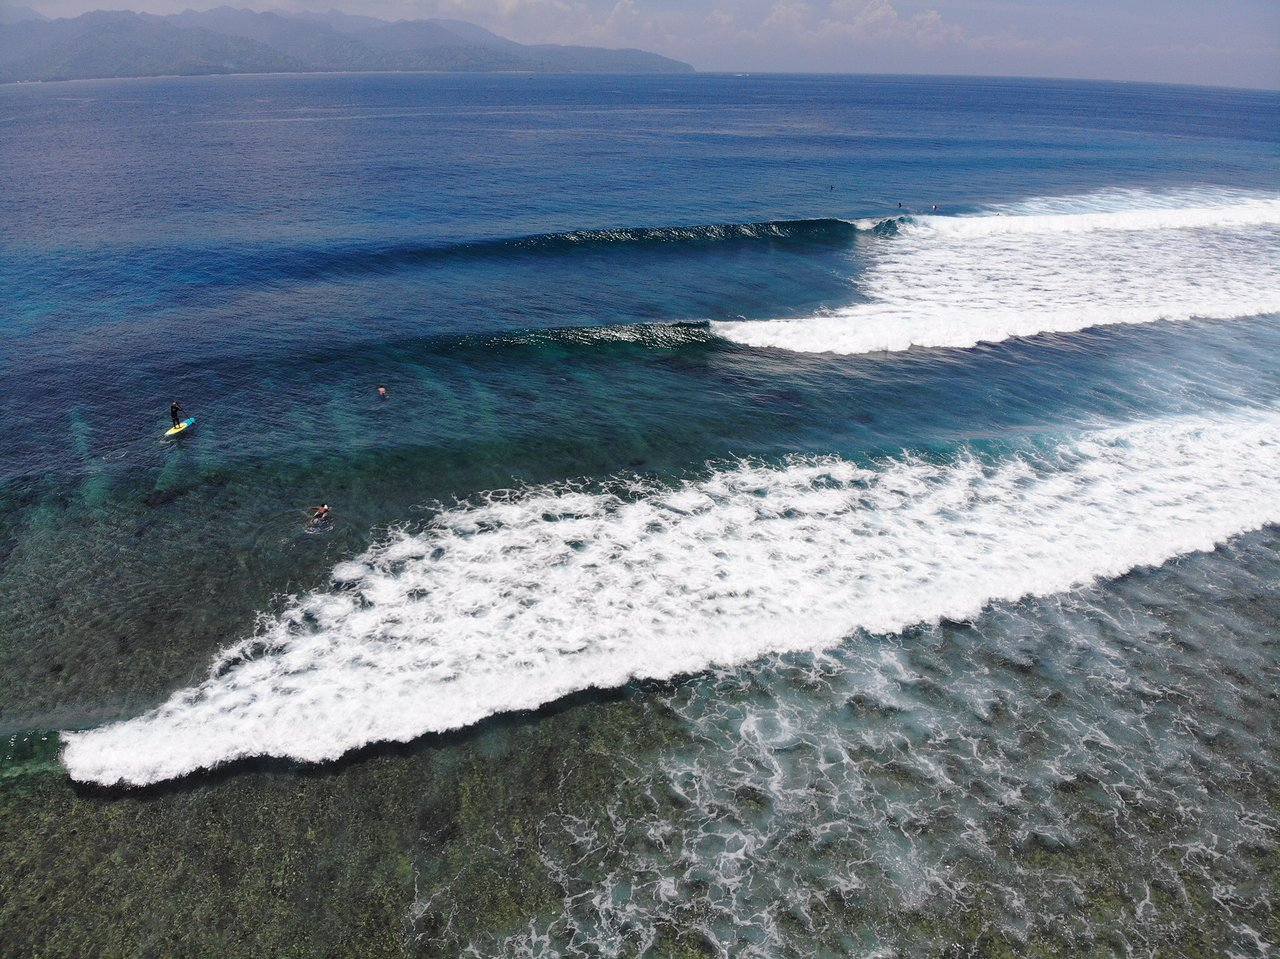 Surfing in Gili Islands, Lombok, Indonesia